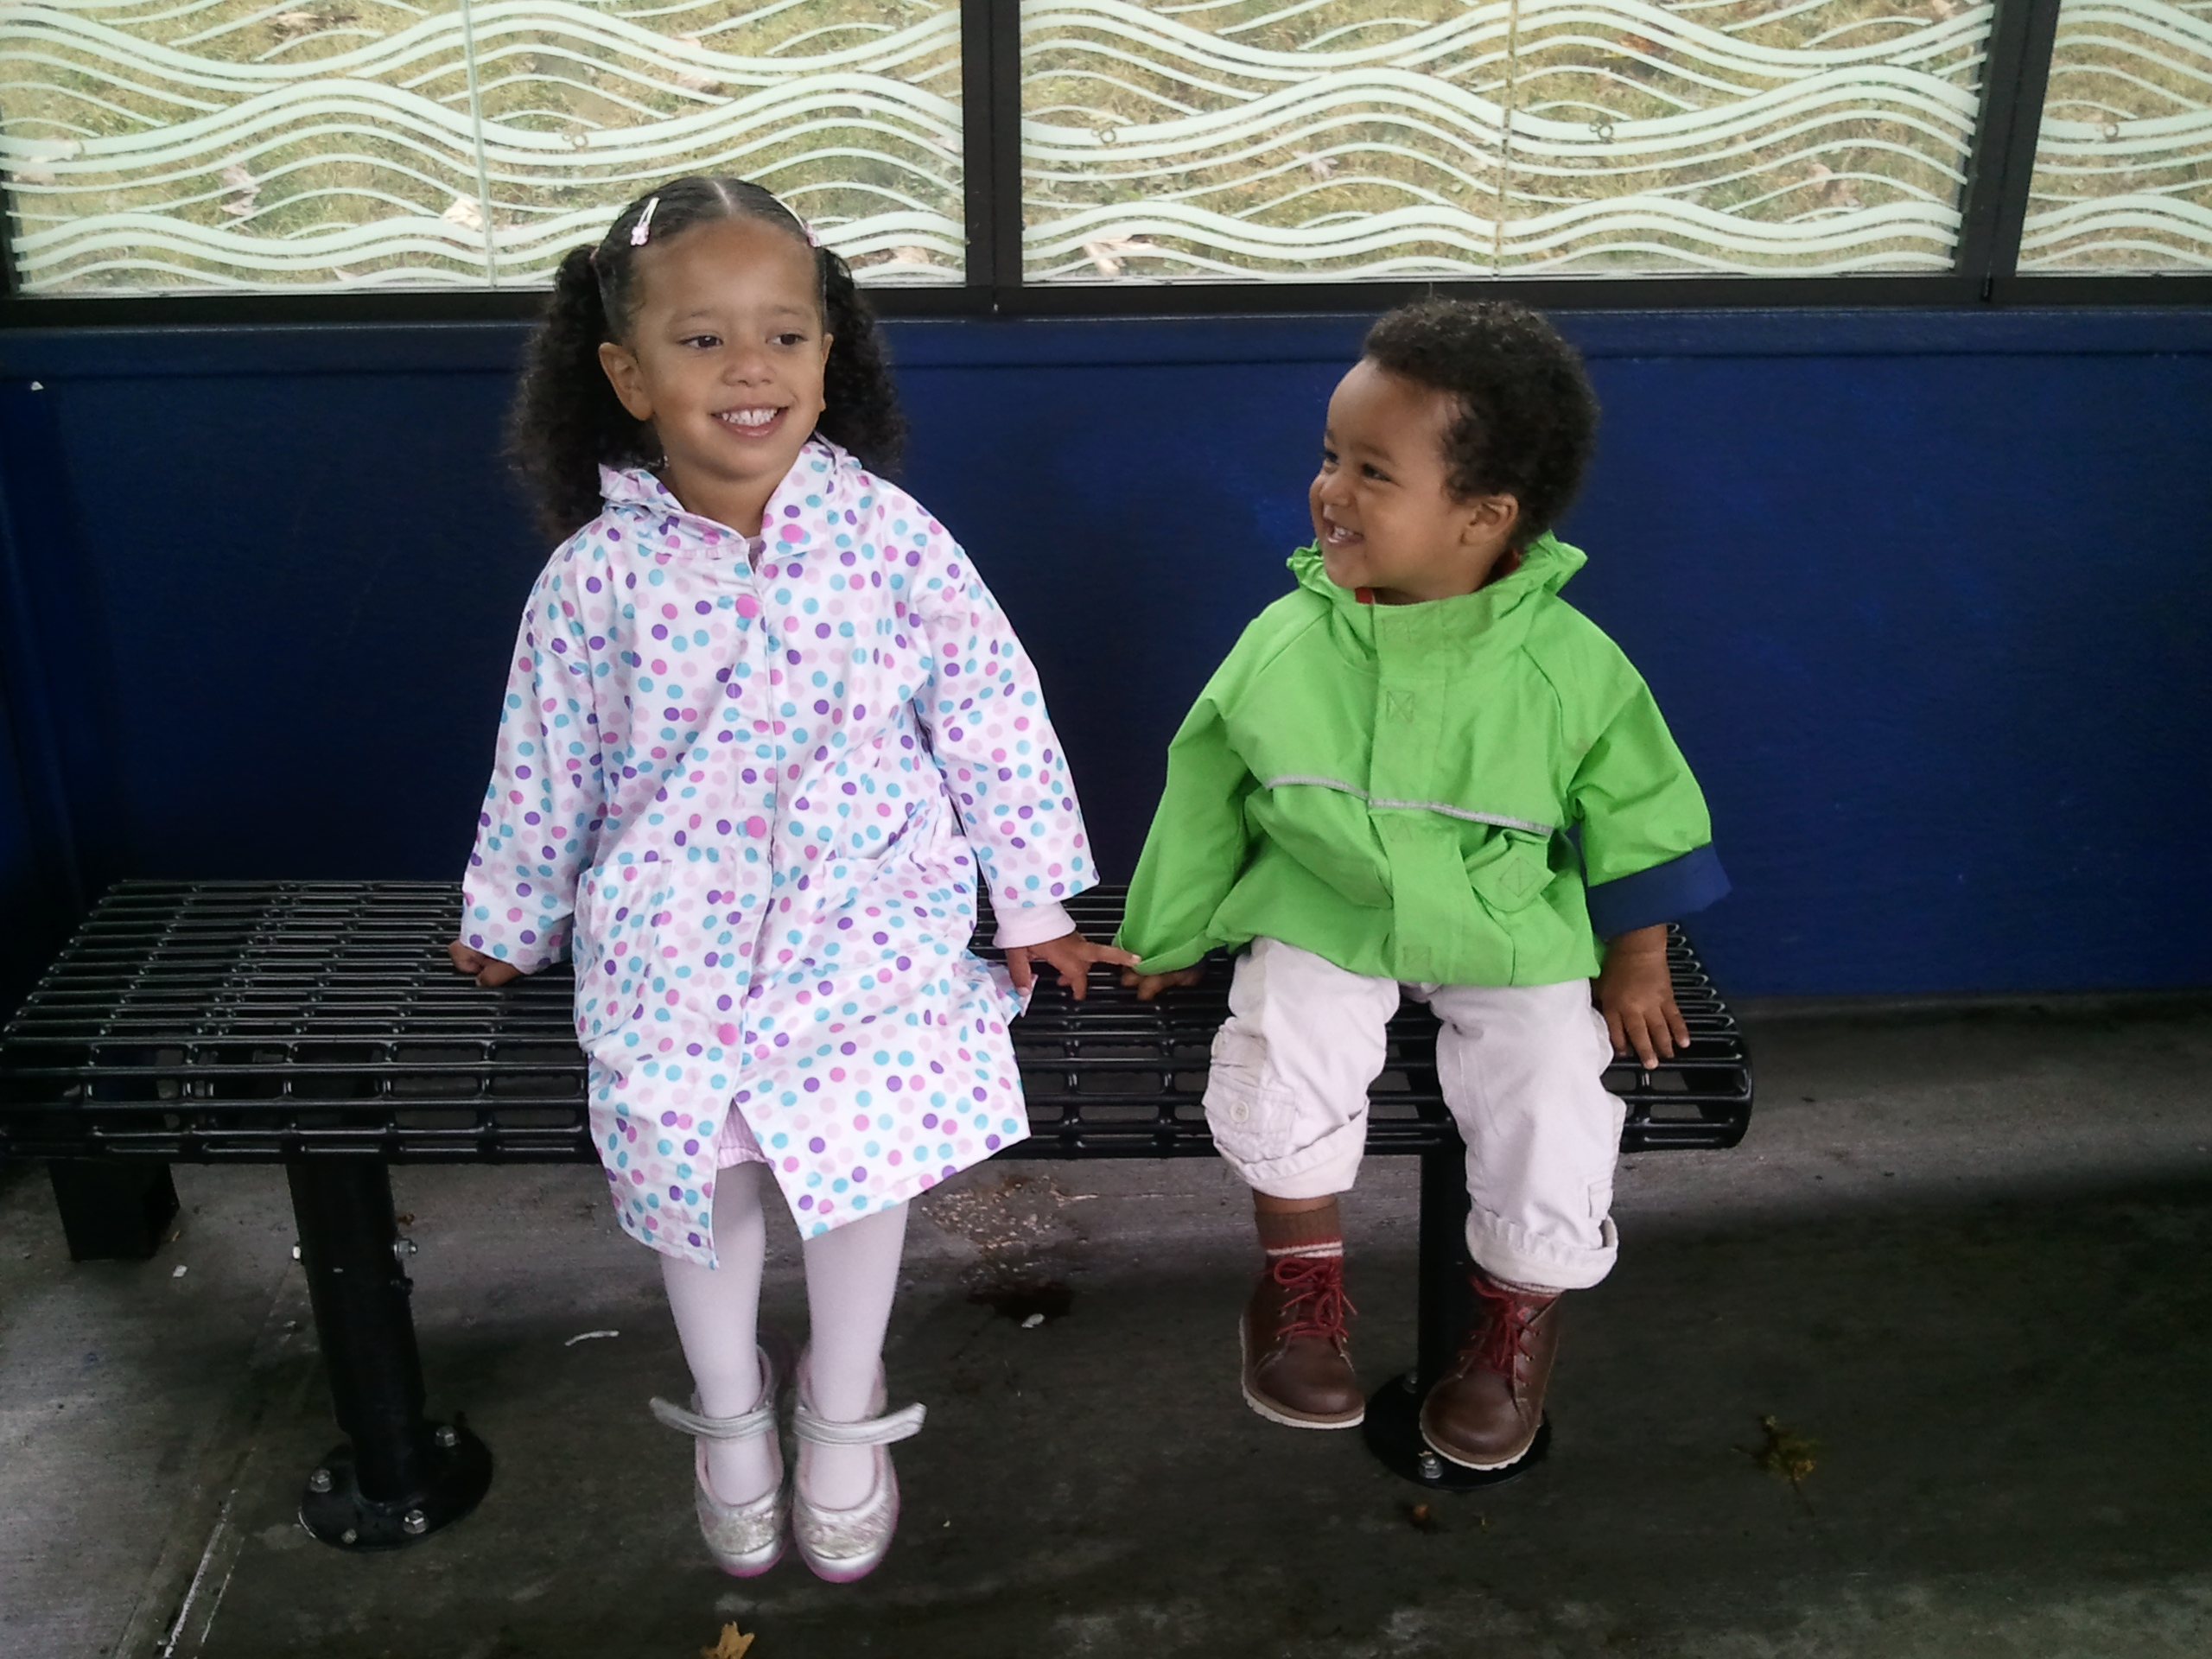 My two babies at a bus stop